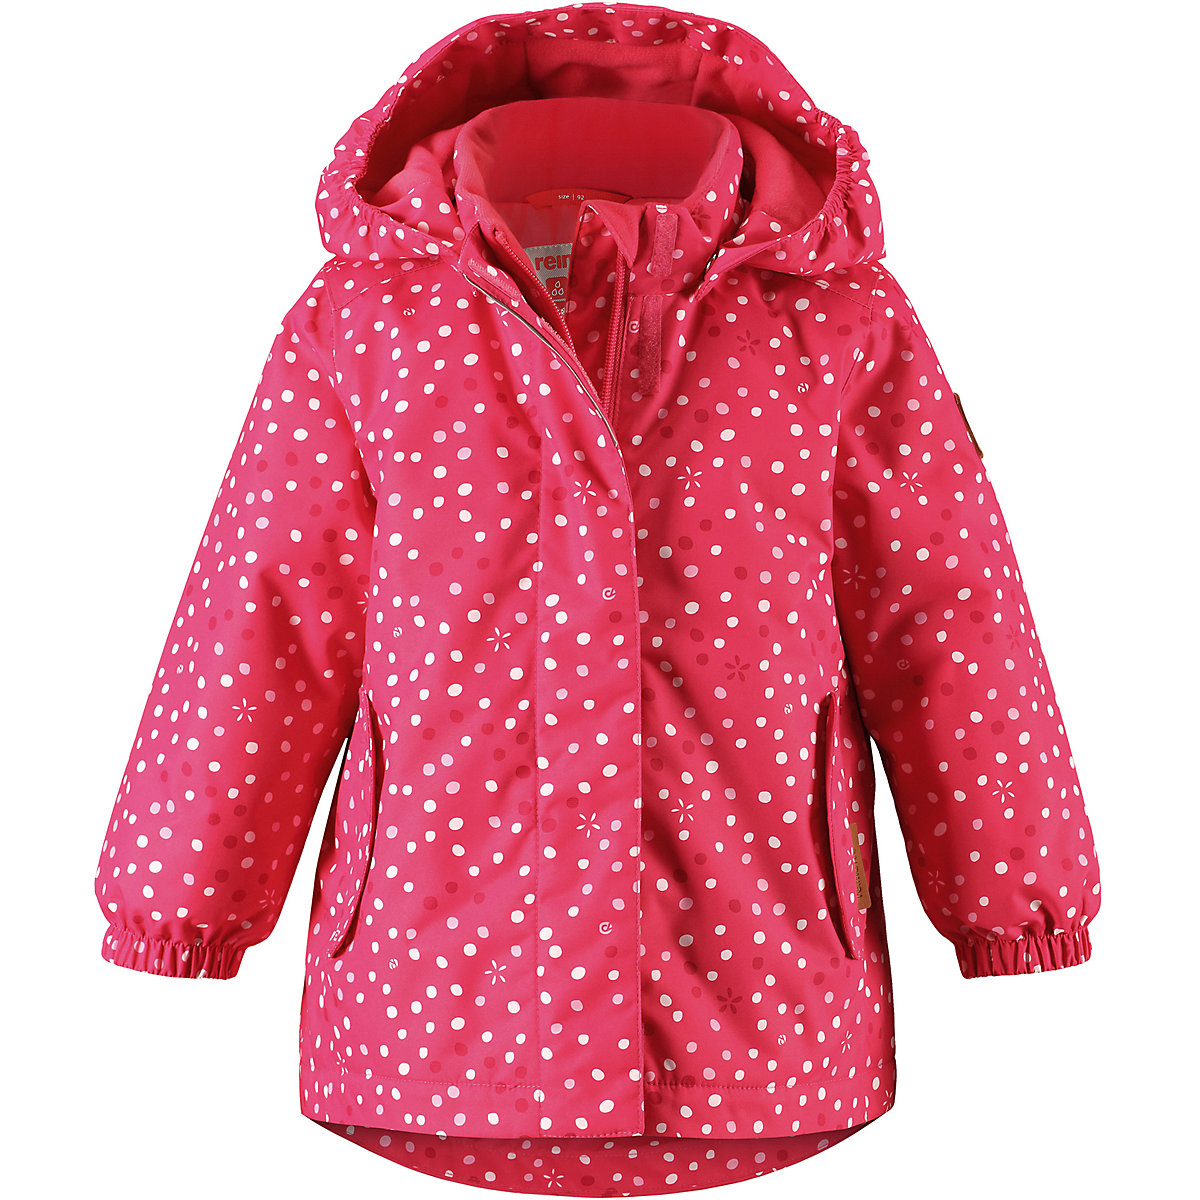 REIMA Jackets & Coats 8637128 for girls baby clothing winter warm boy girl jacket Polyester icebear 2018 fashion winter jacket men s brand clothing jacket high quality thick warm men winter coat down jacket 17md811